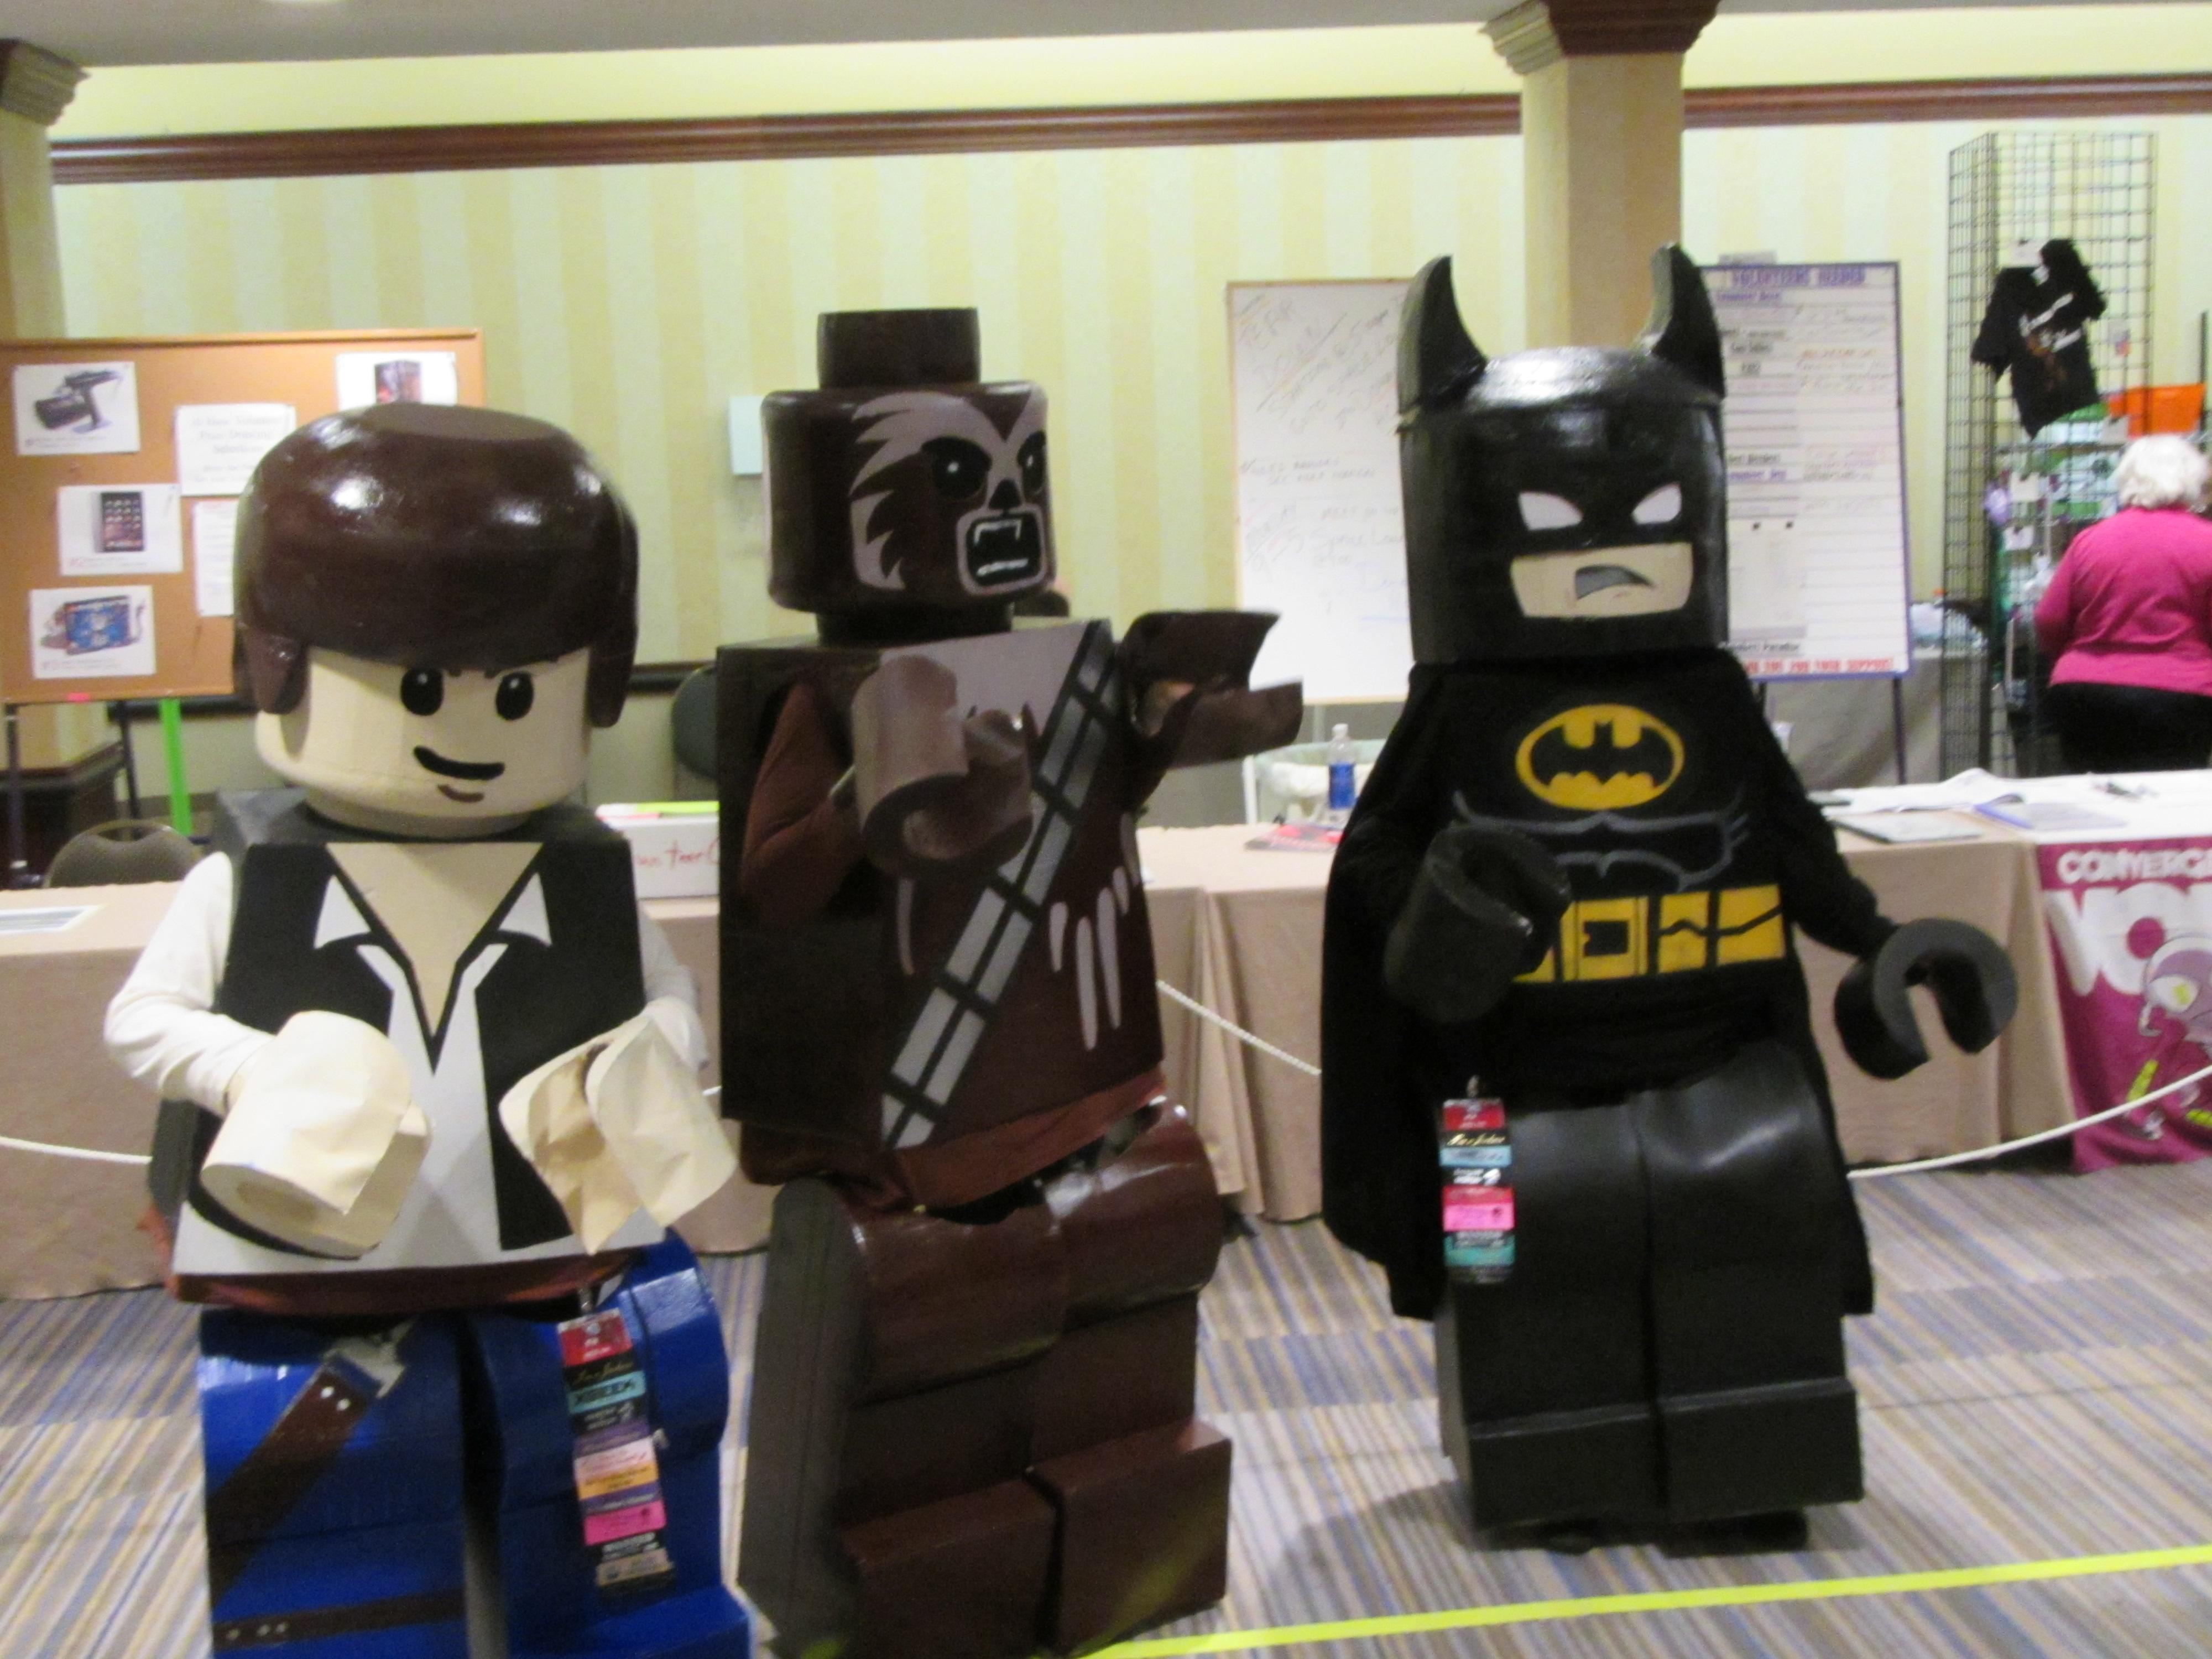 Lego-inspired cosplay at CONvergence, July 2015